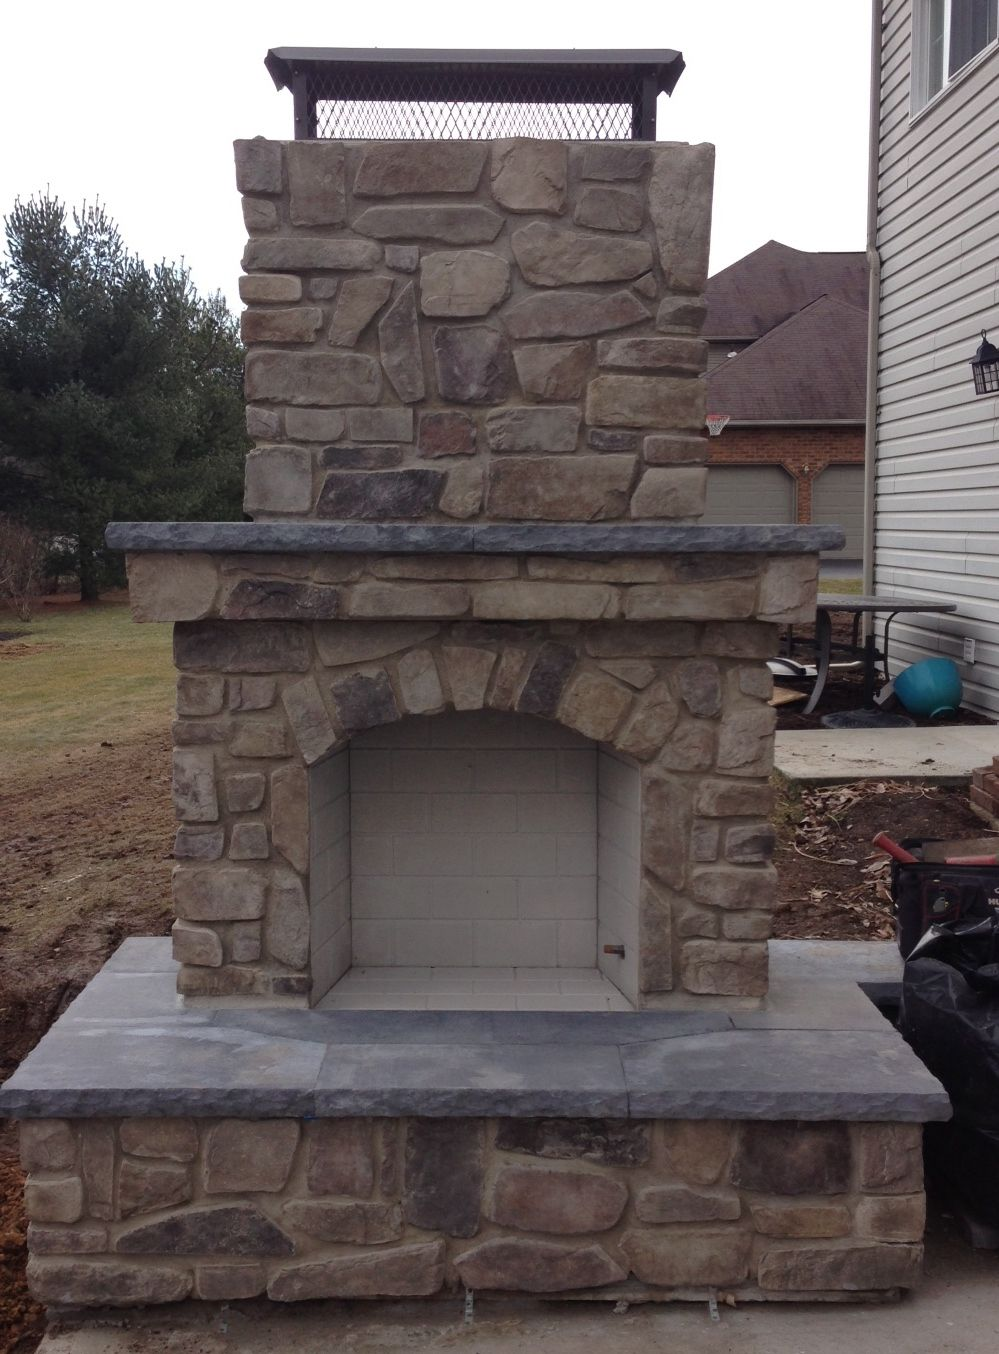 Outdoor fireplace with stone veneer Still working on the rest of